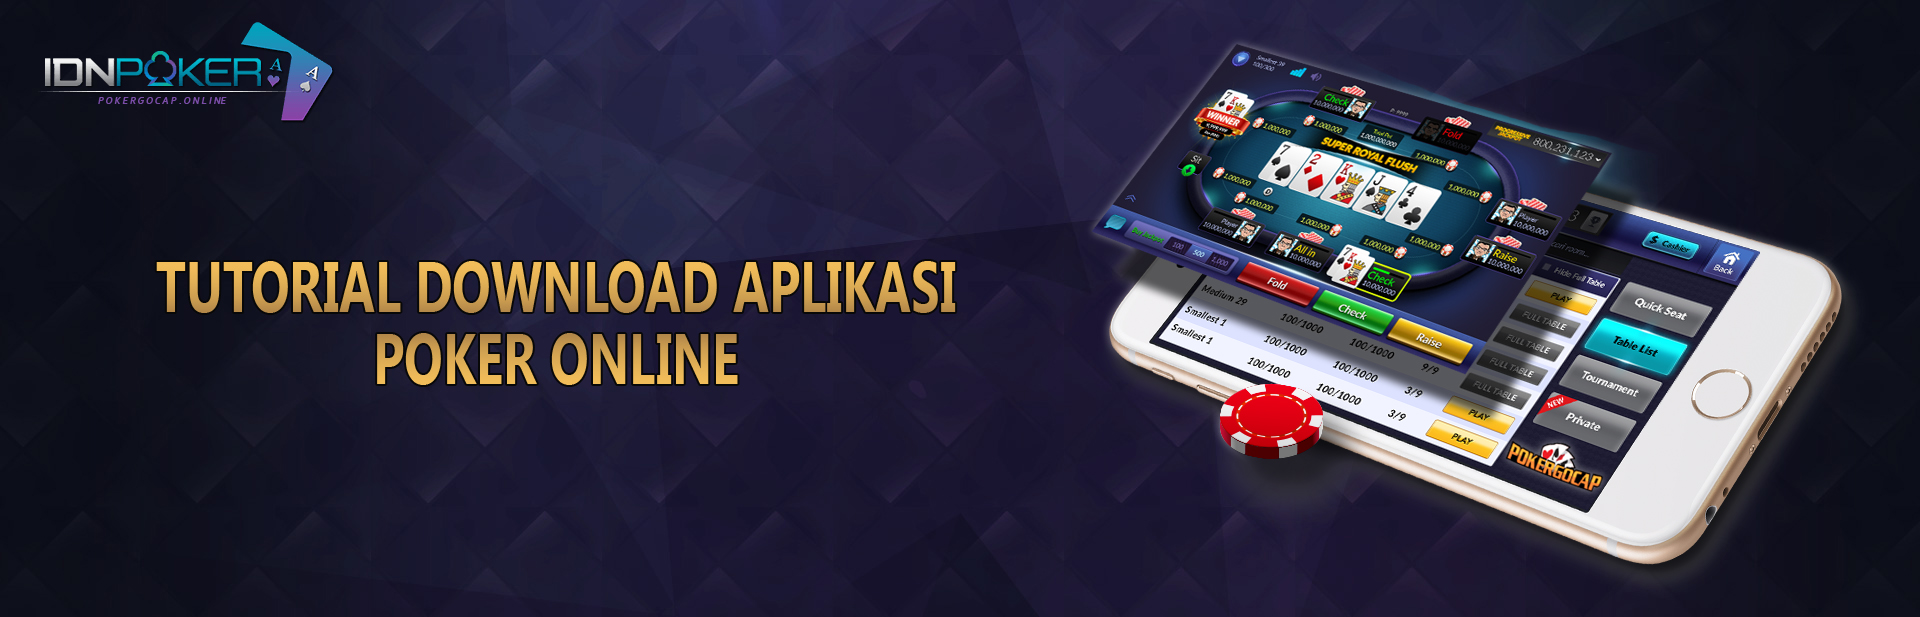 Tutorial Download Aplikasi Poker Online